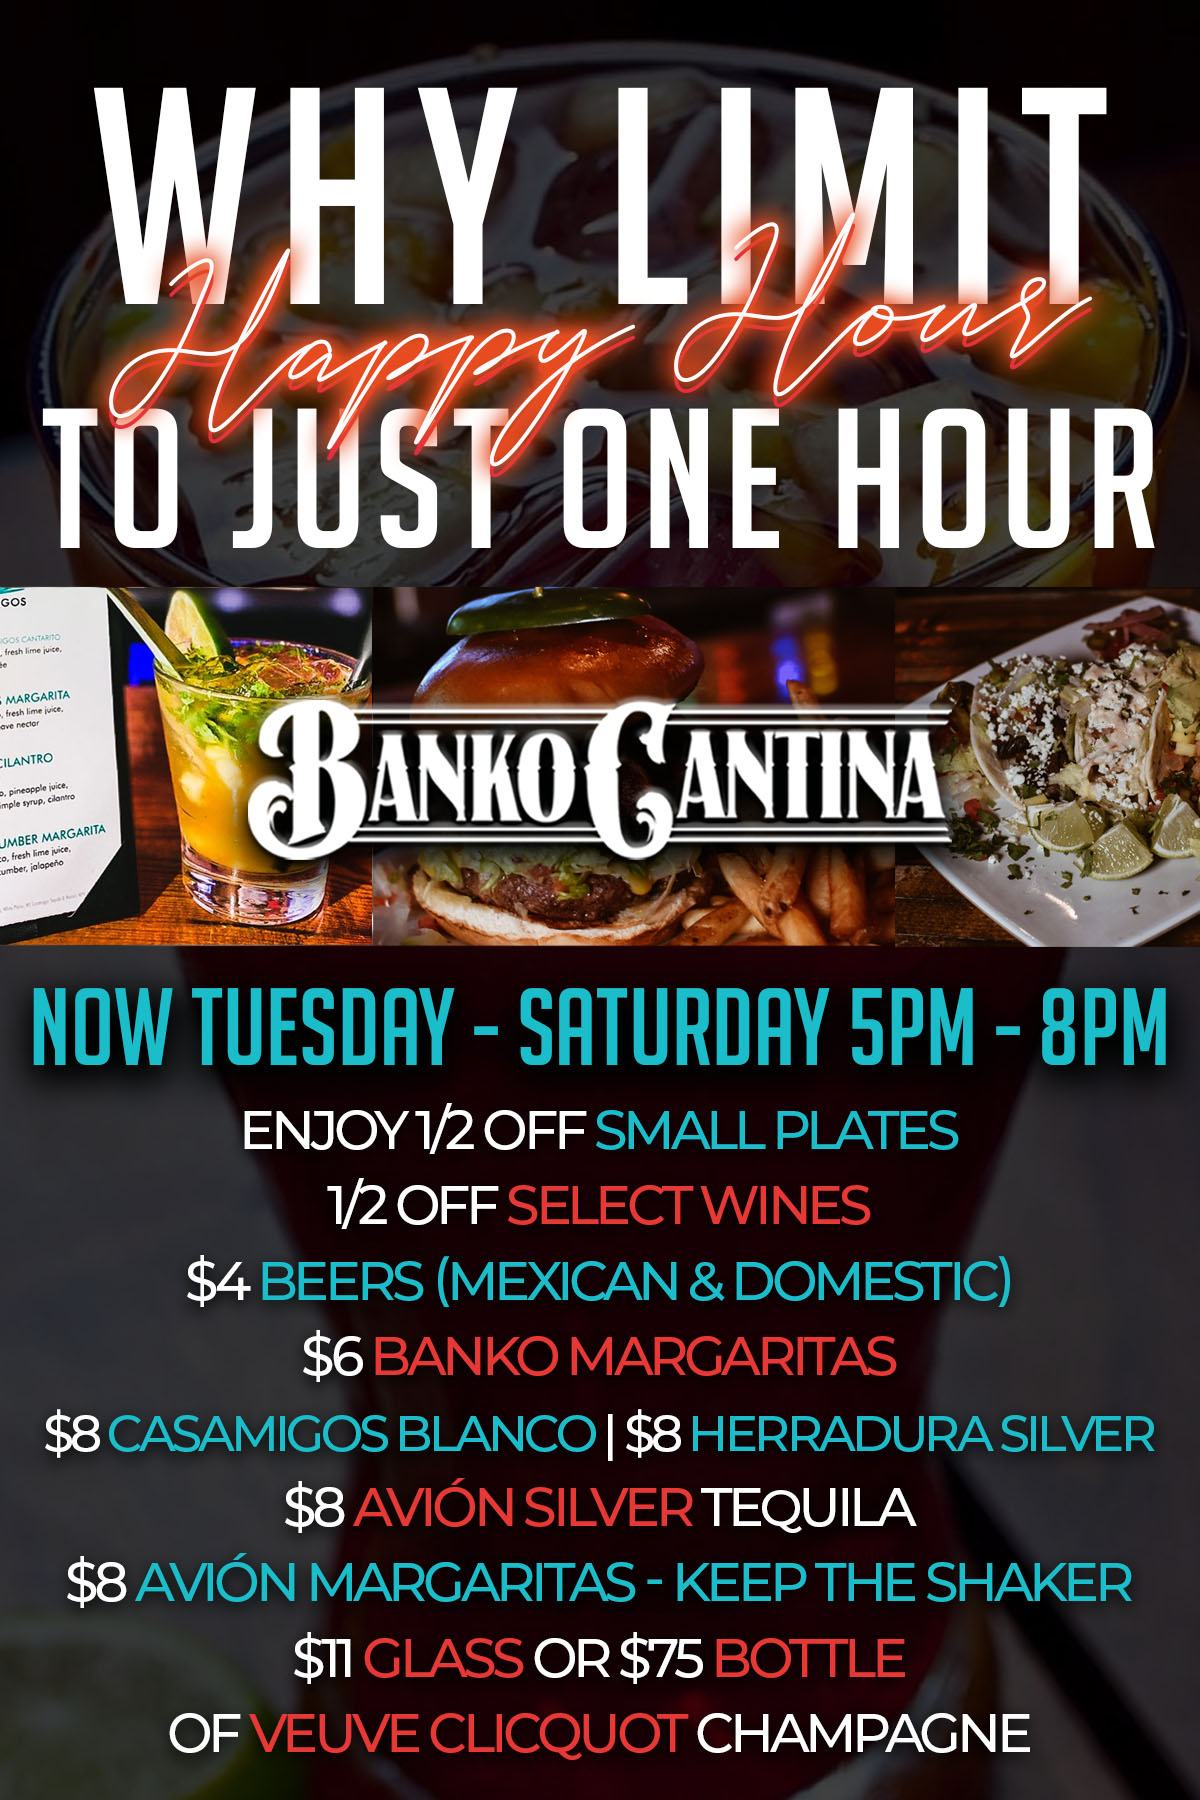 Banko Cantina Happy Hour now Tuesday - Saturday